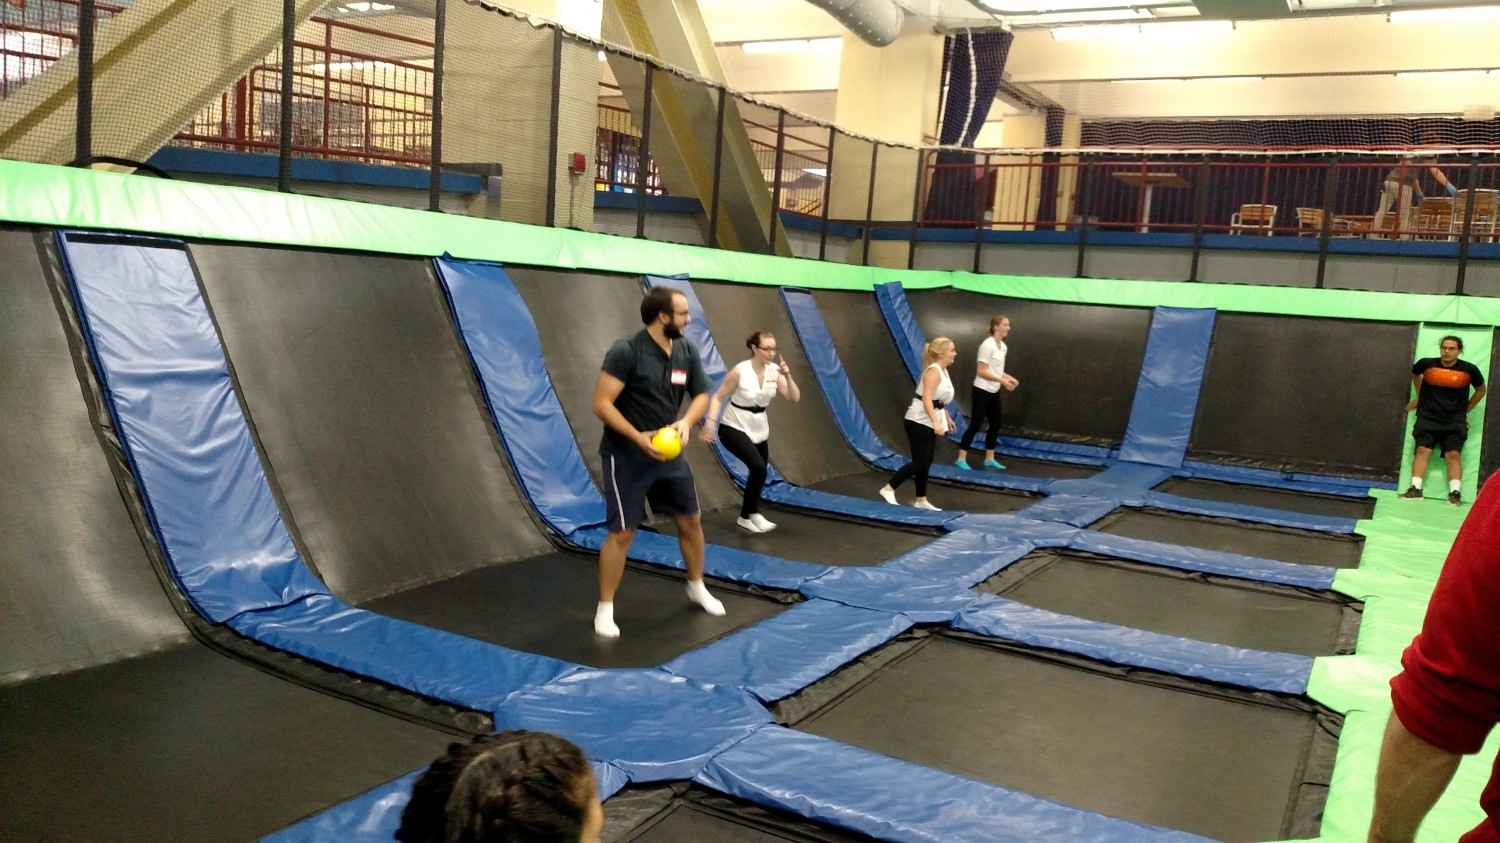 Jeff carefully calculating the ball's trajectory  - Trampoline Dodgeball - AFC Veterinary Challenge 2015 – Manchester Vet Clinic - CT